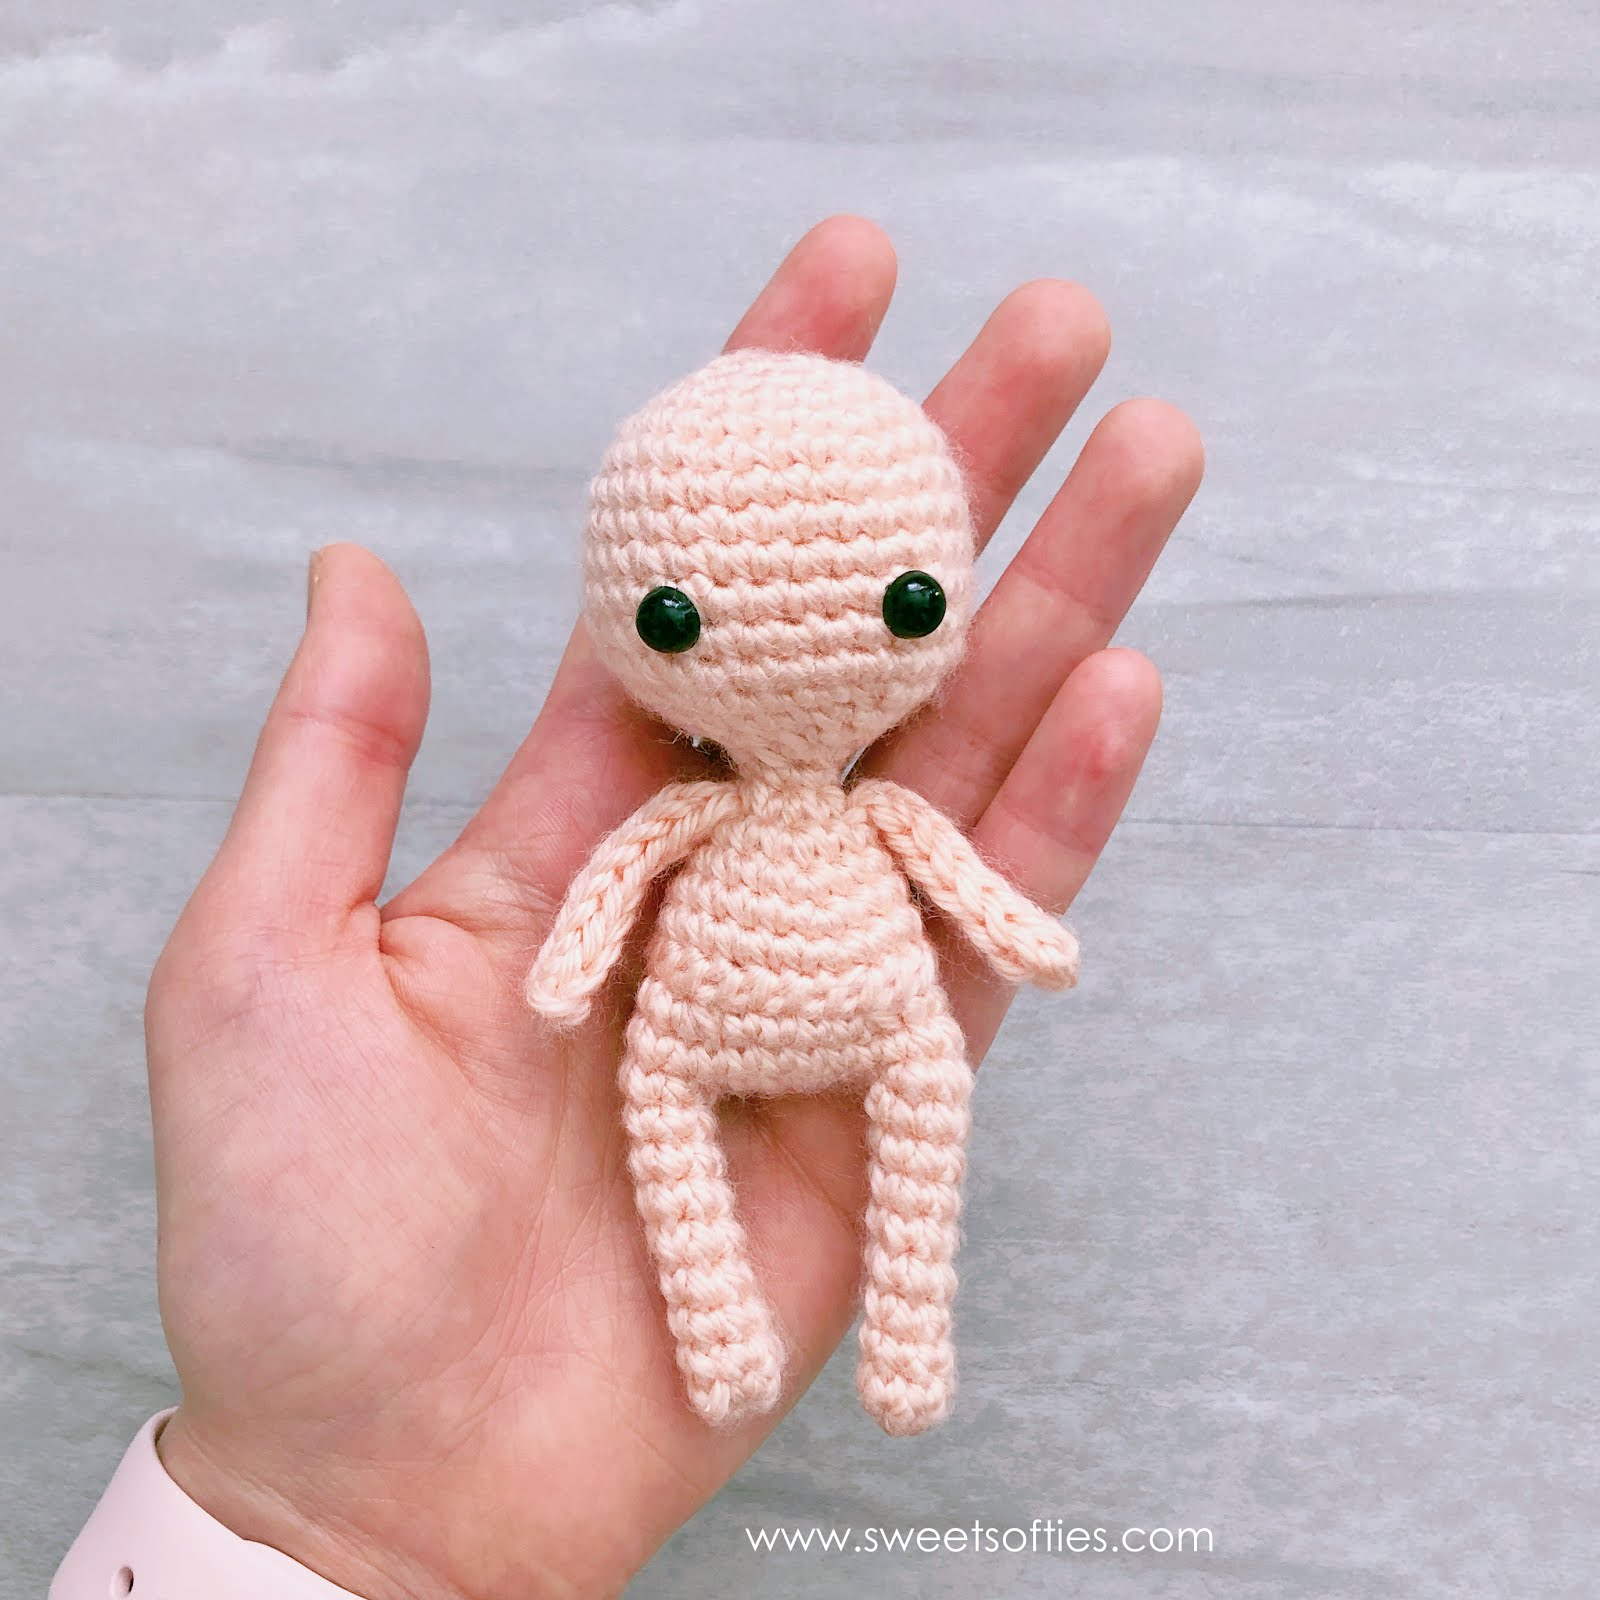 Crochet Amigurumi Doll (dressed as frog) - Part 1 - YouTube | 1600x1600